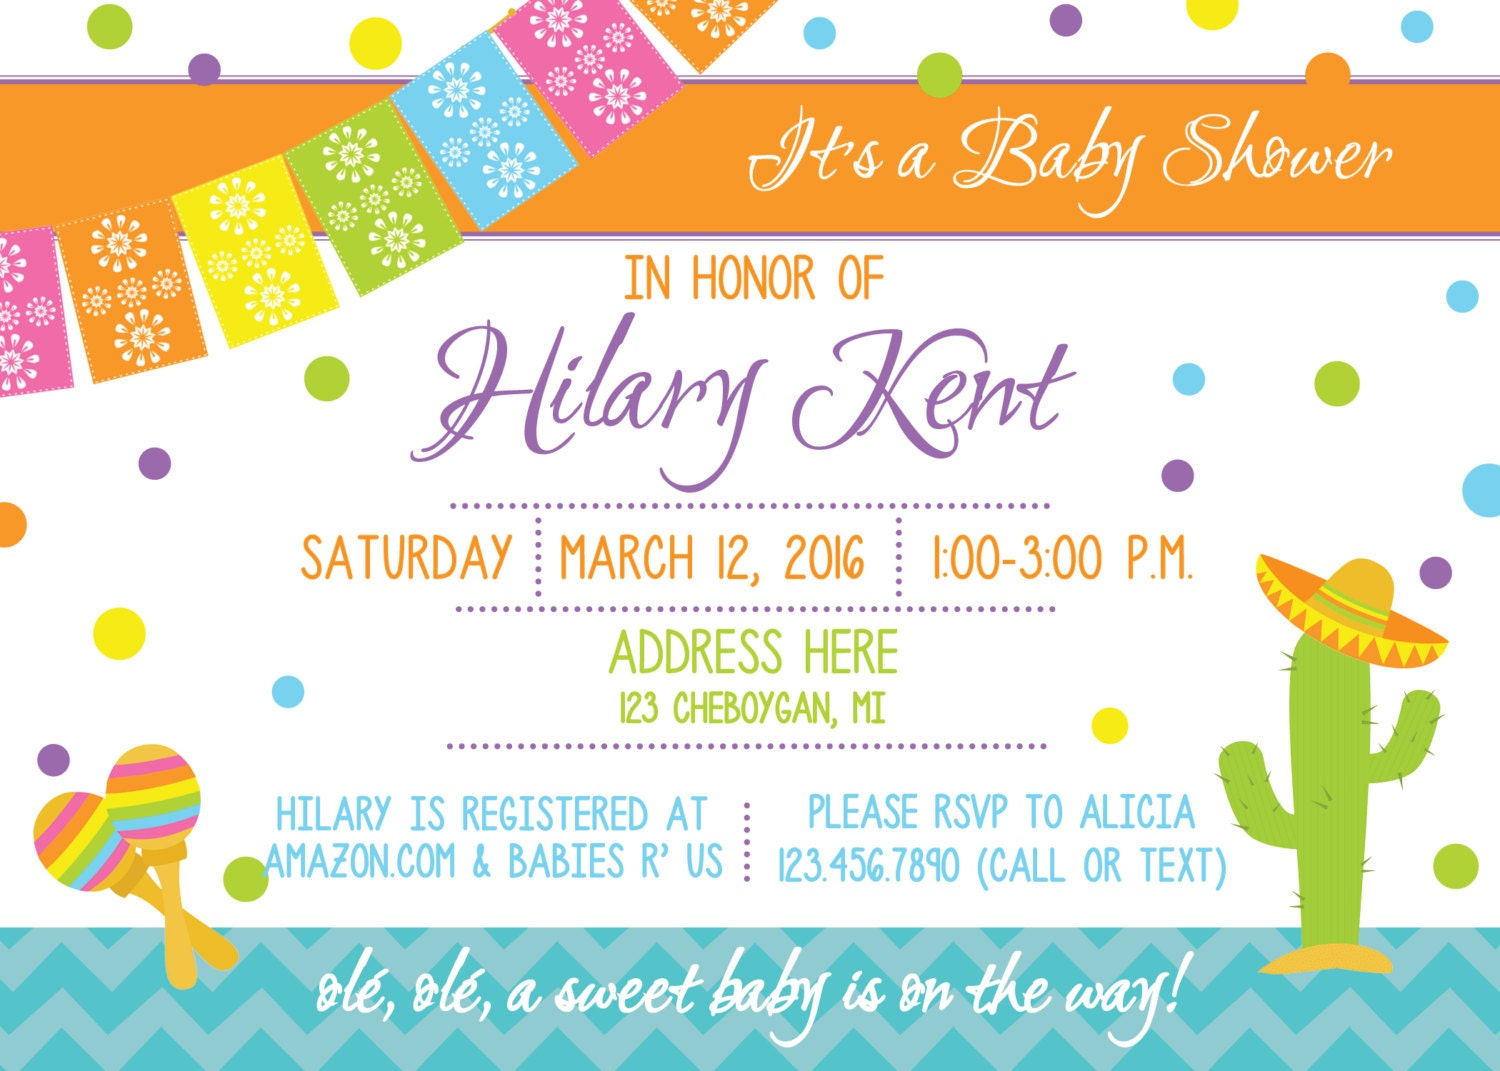 Fiesta Baby Shower Invitation, Gender Neutral Baby Shower, Co-Ed ...